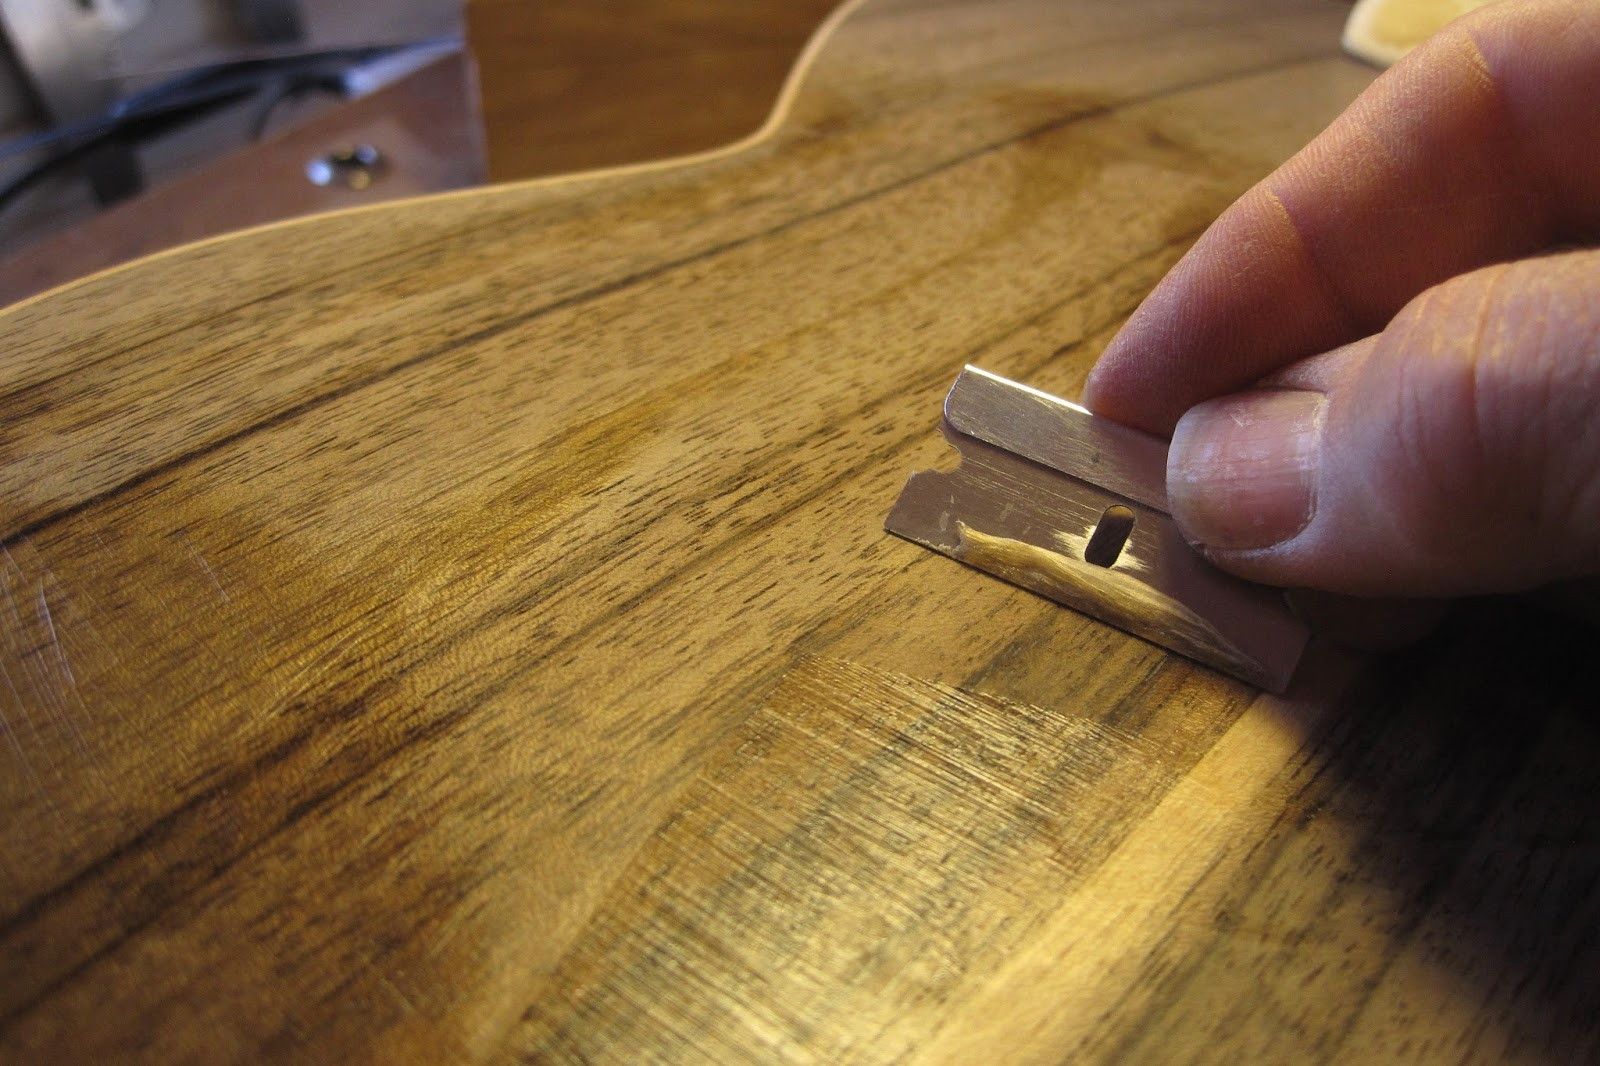 A razor is used to scrape off excess grain filler